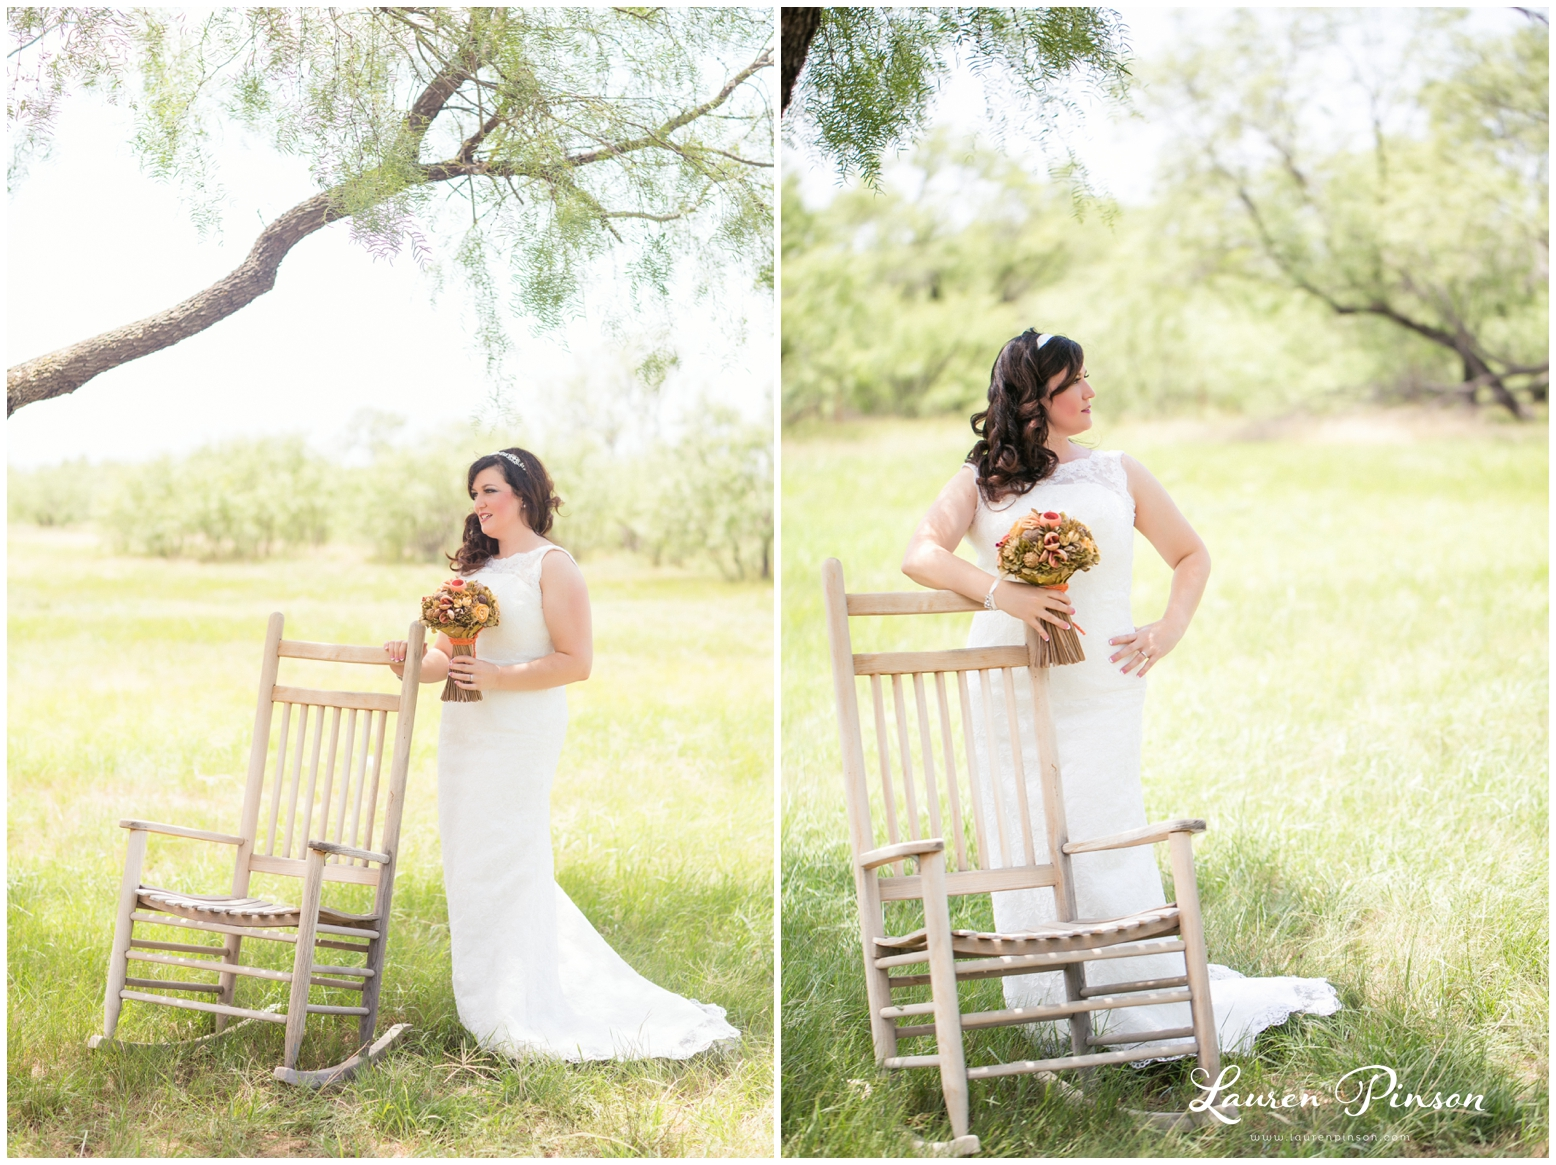 wichita-falls-coyote-ranch-resort-wedding-texas-photography-family-ceremony-balloons-rustic-lace_0320.jpg